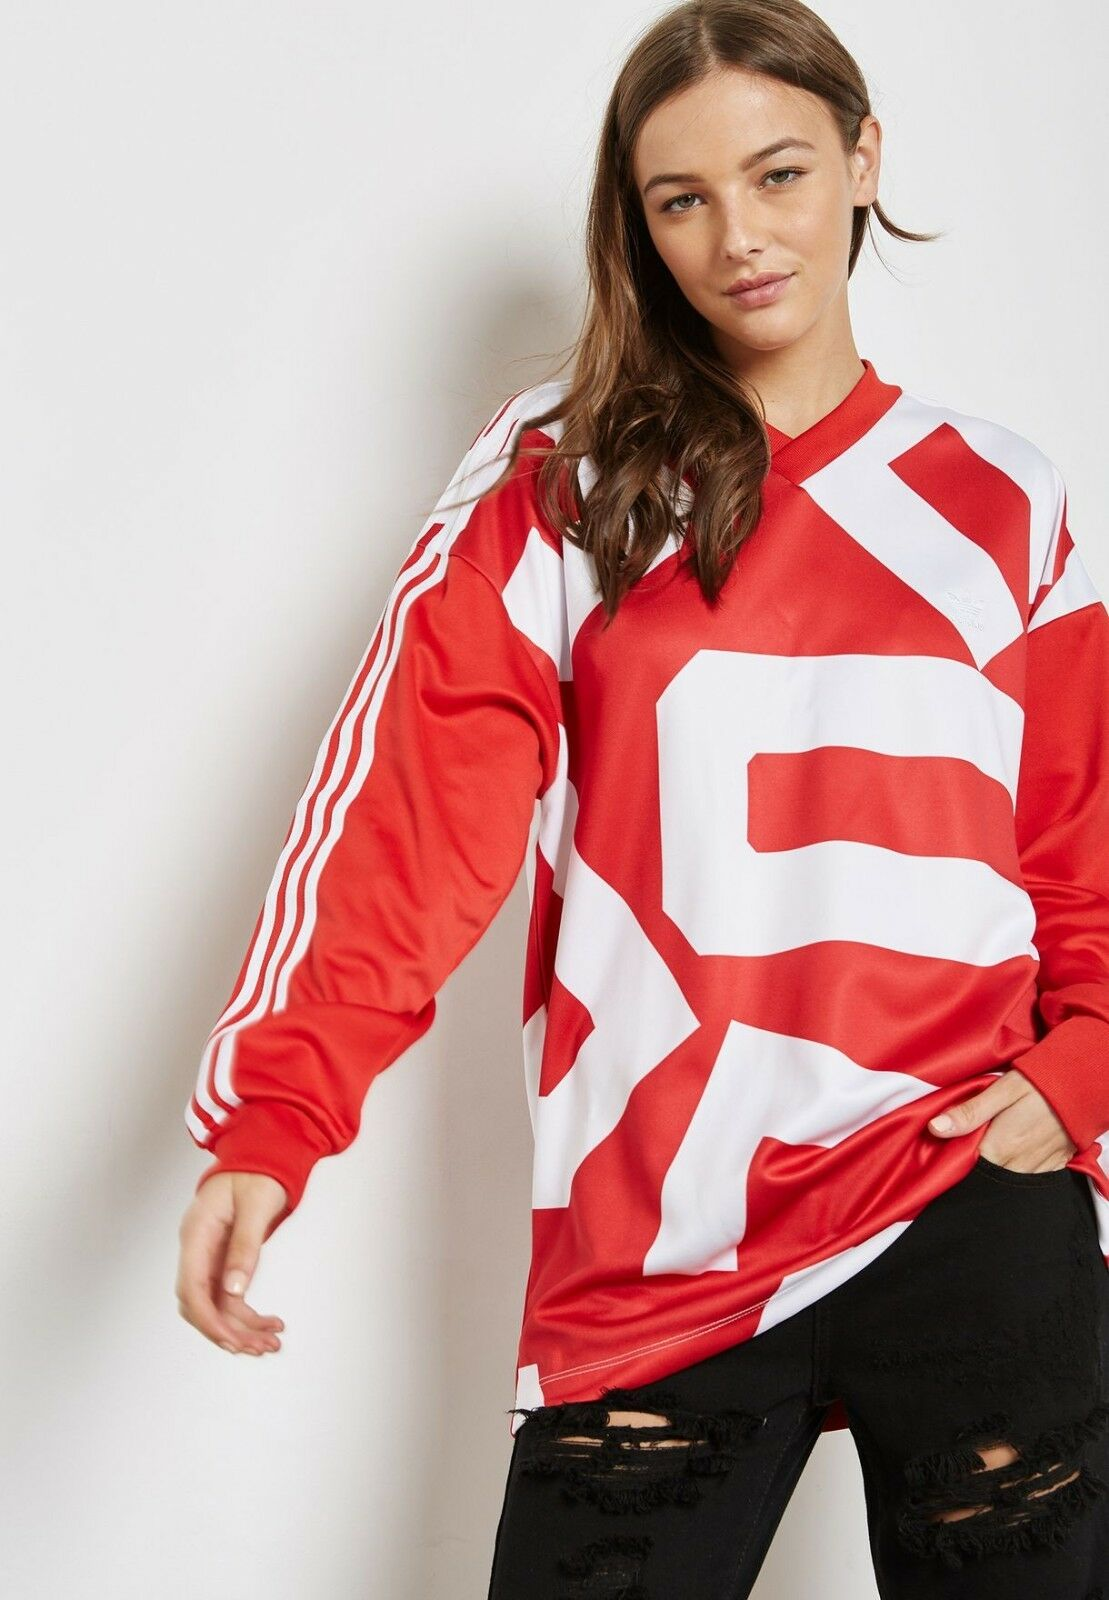 Adidas Originals Originals Originals Womens M Bold Age Long Sleeve Top Oversize Sweatshirt Red White 33562c